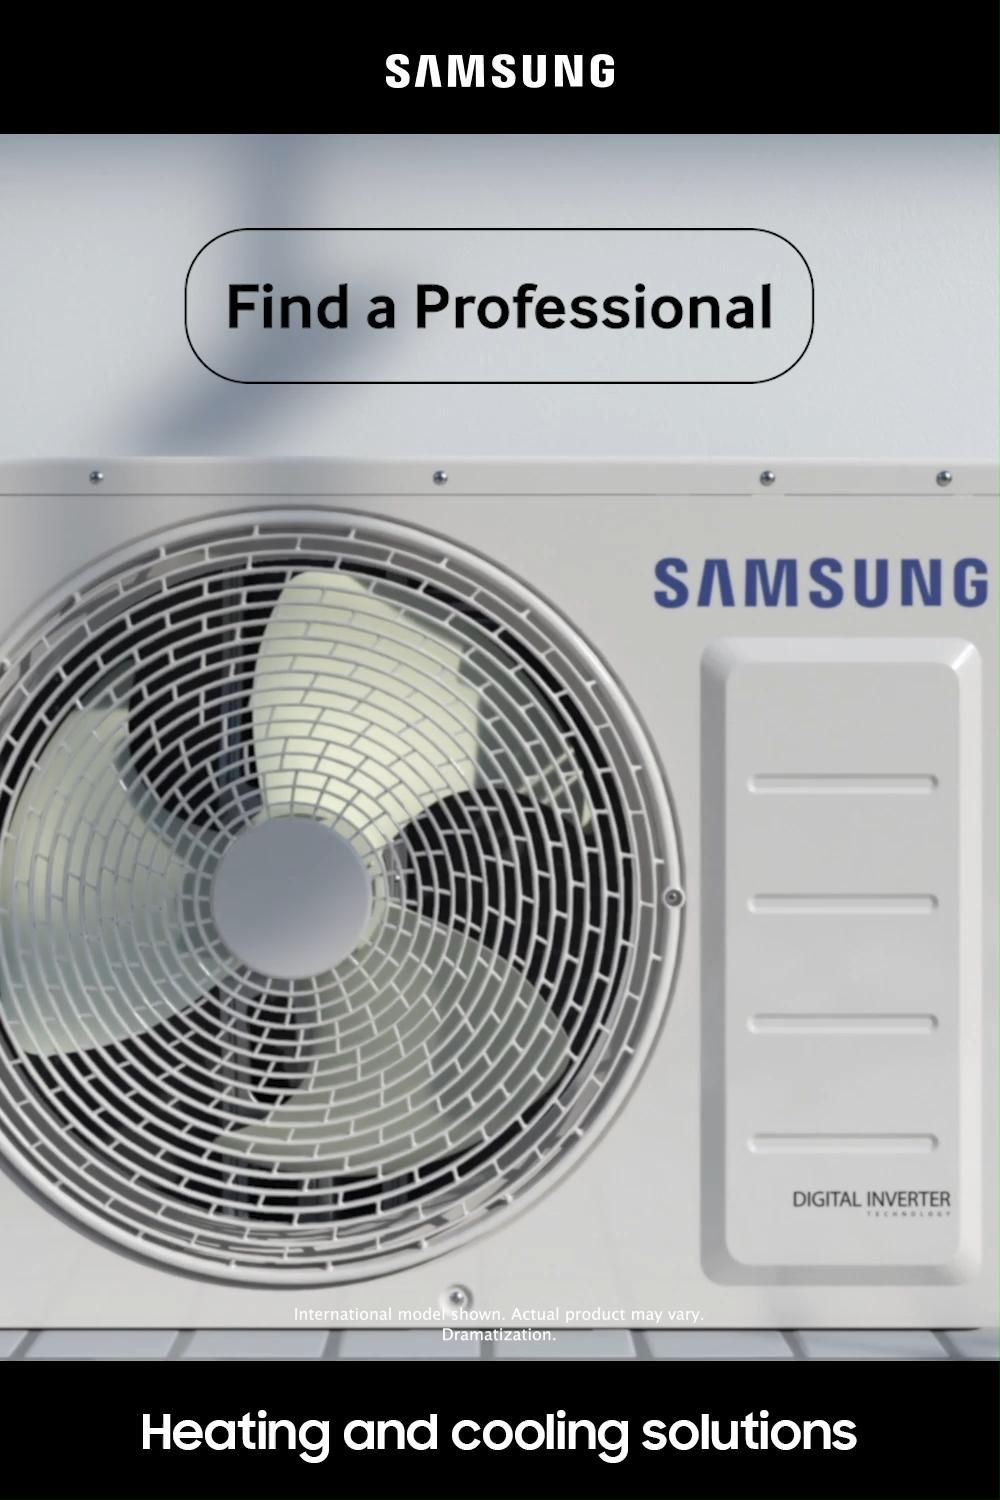 Samsung Heating And Cooling Solutions Video In 2020 Heating